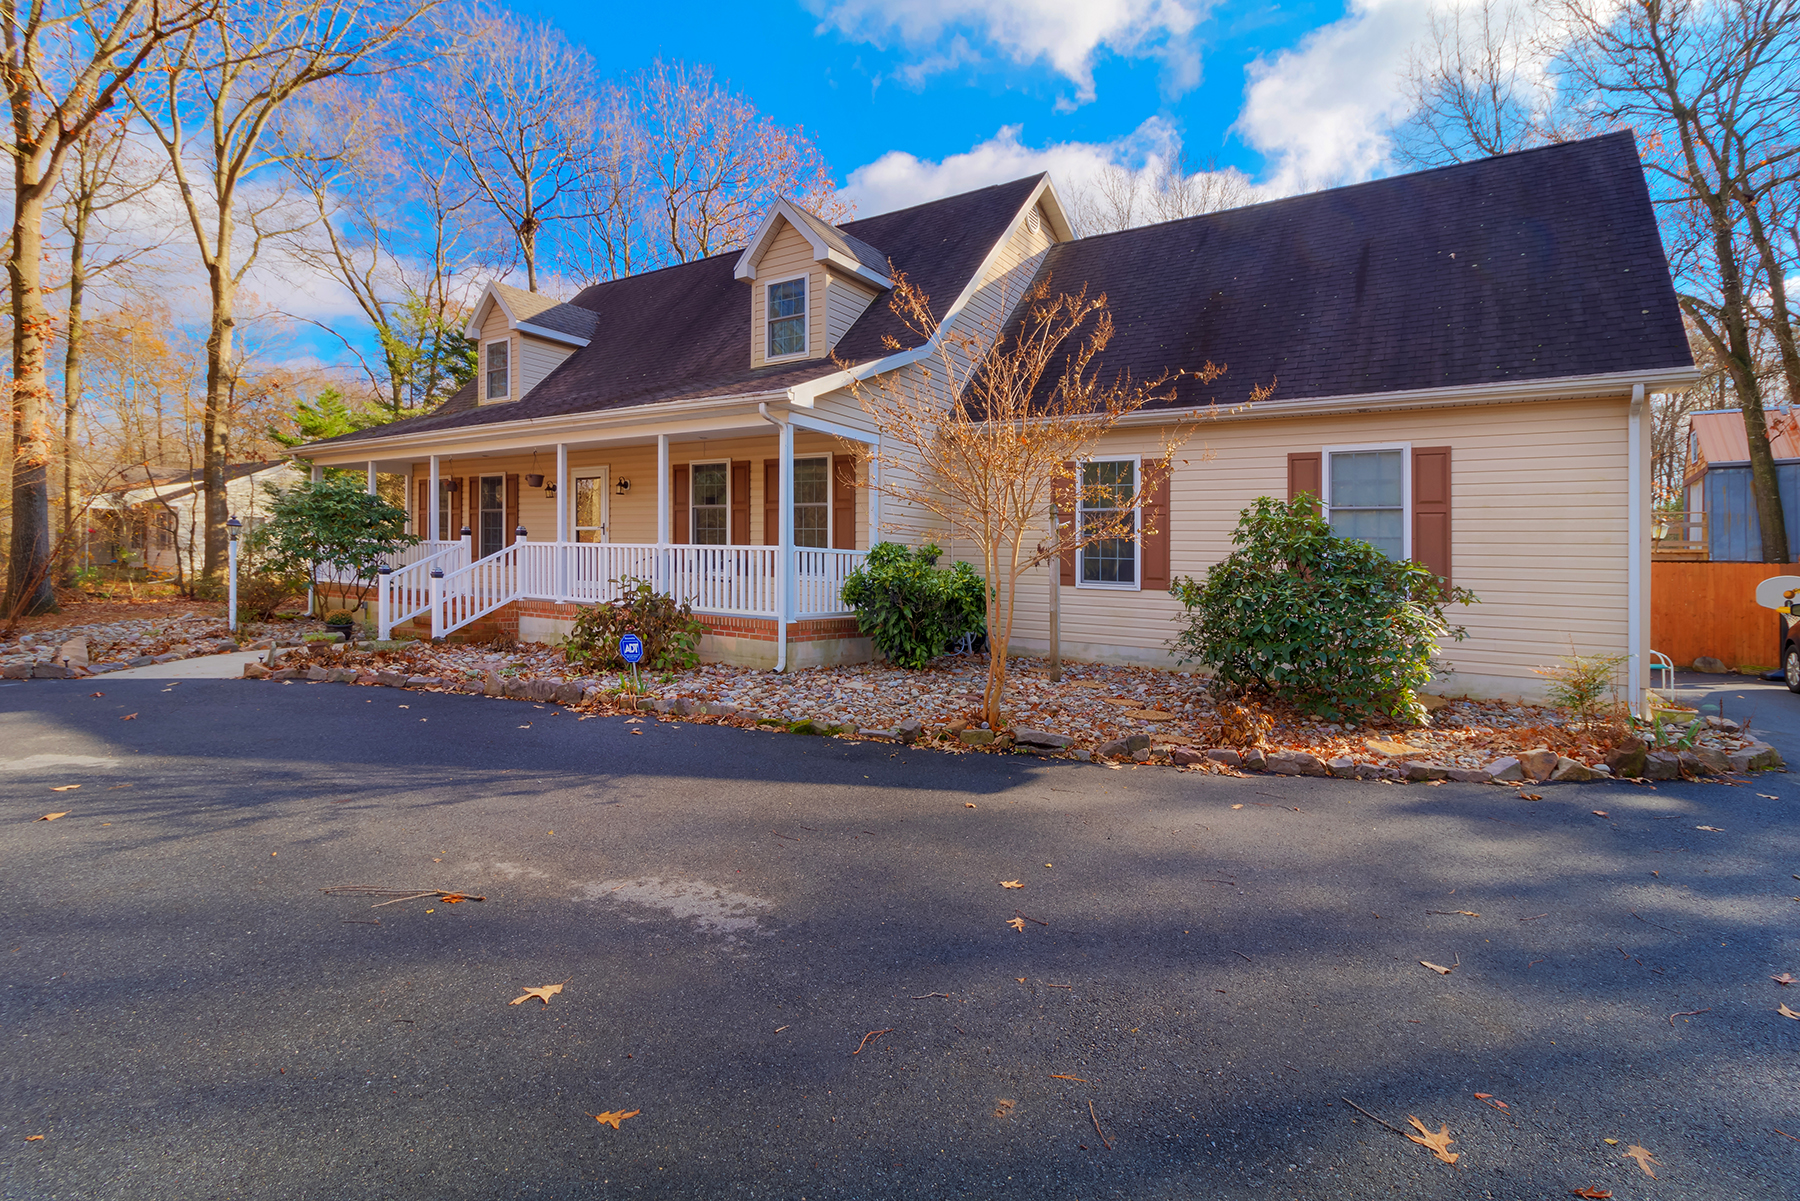 Single Family Home for Sale at 14328 Shiloh Church Road , Laurel, DE 19956 14328 Shiloh Church Road Laurel, Delaware 19956 United States